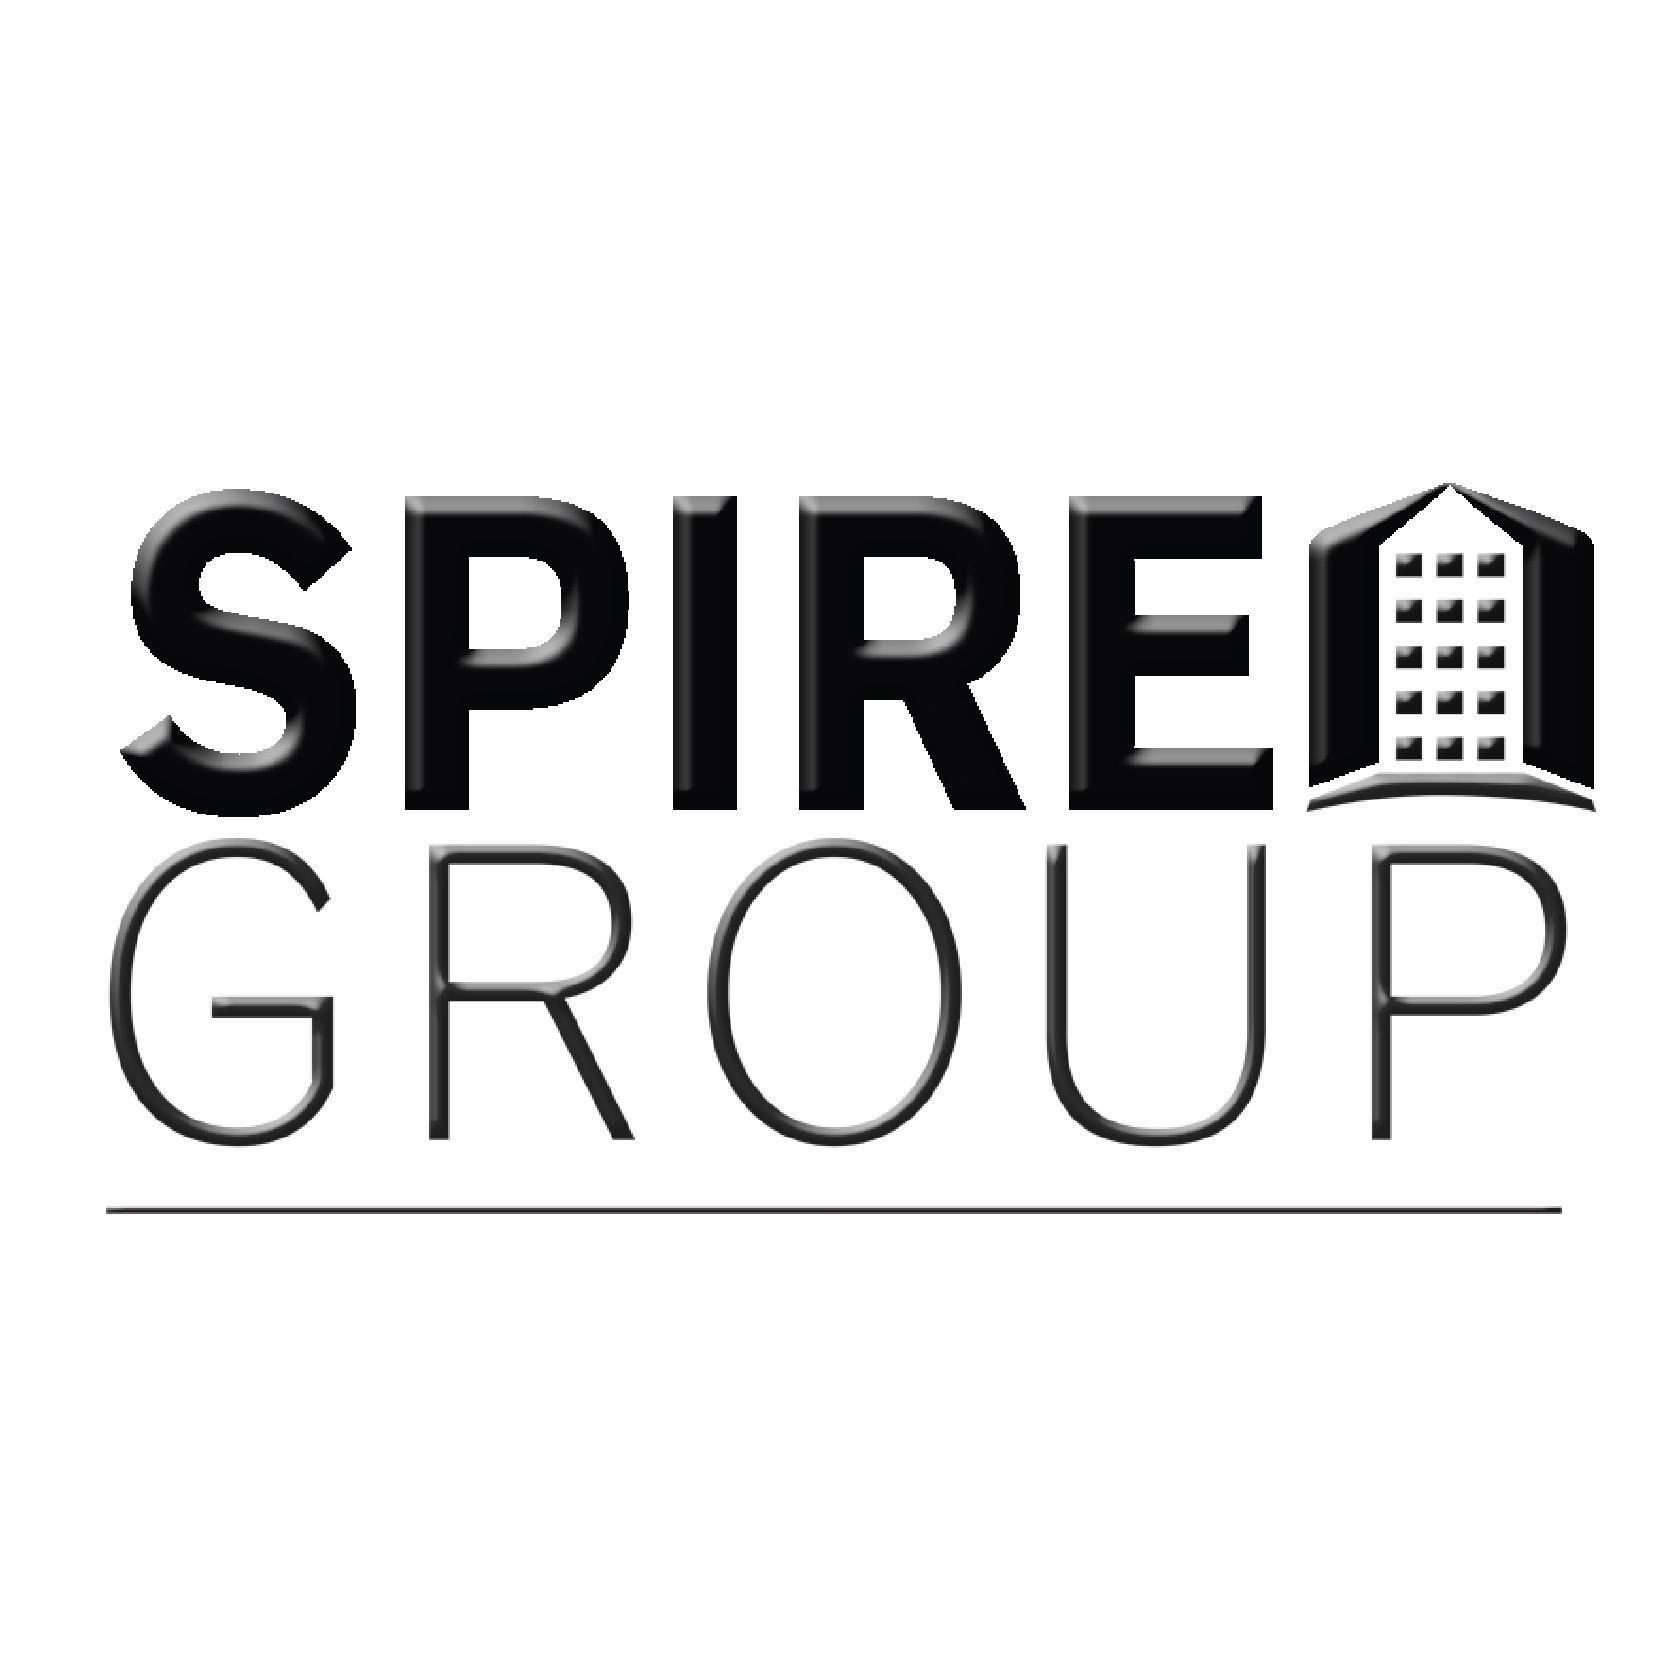 Spire Group